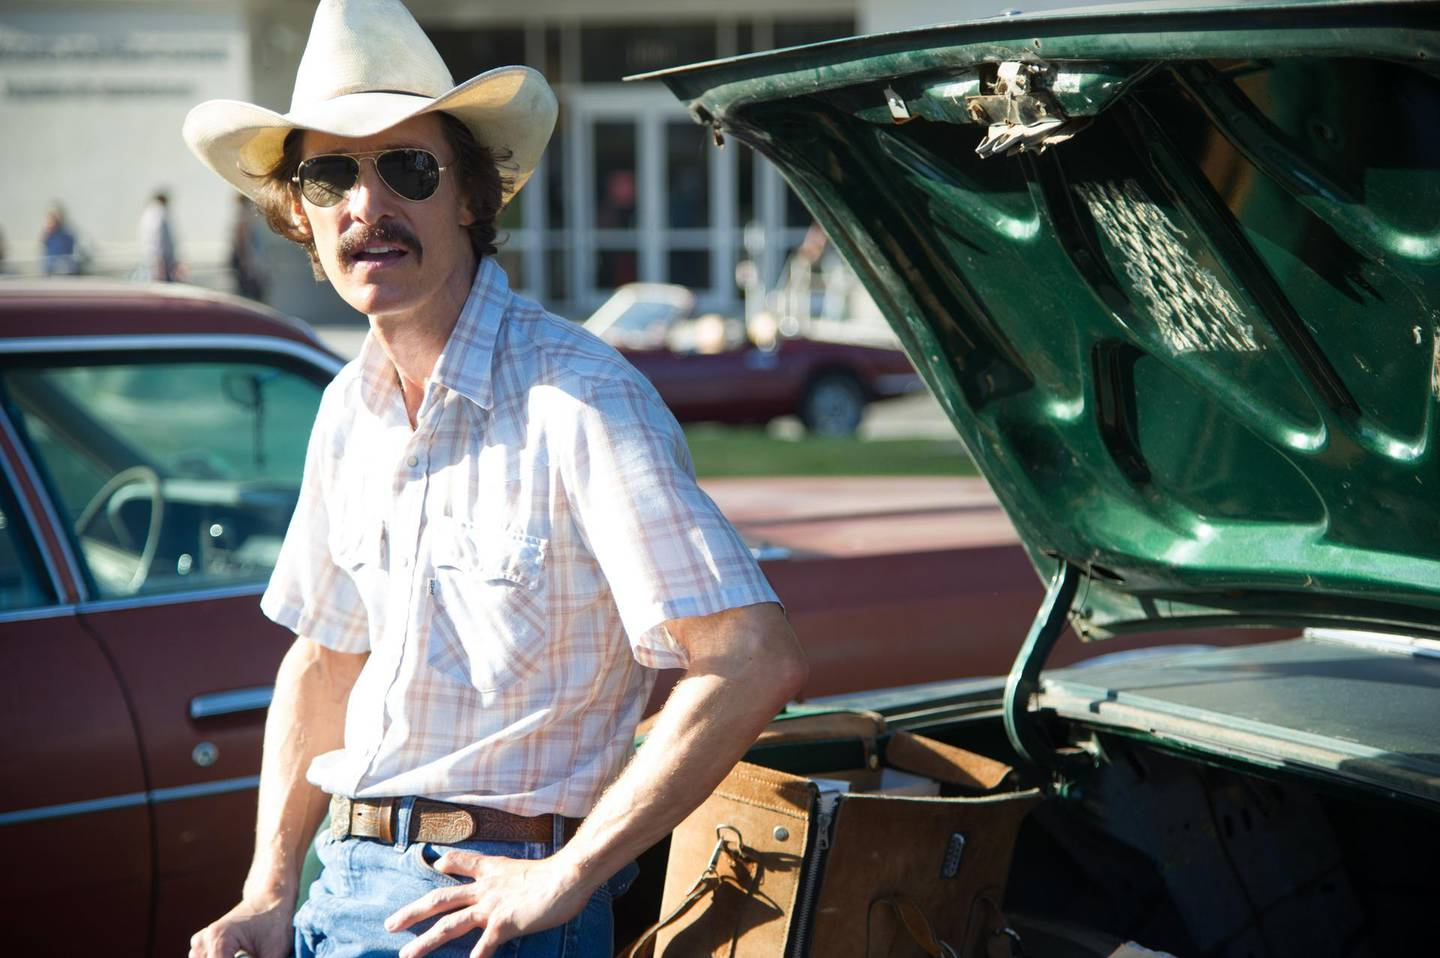 """Matthew McConaughey as Ron Woodroof in a scene from the film, """"Dallas Buyers Club."""" CREDIT: Courtesy Focus Features"""